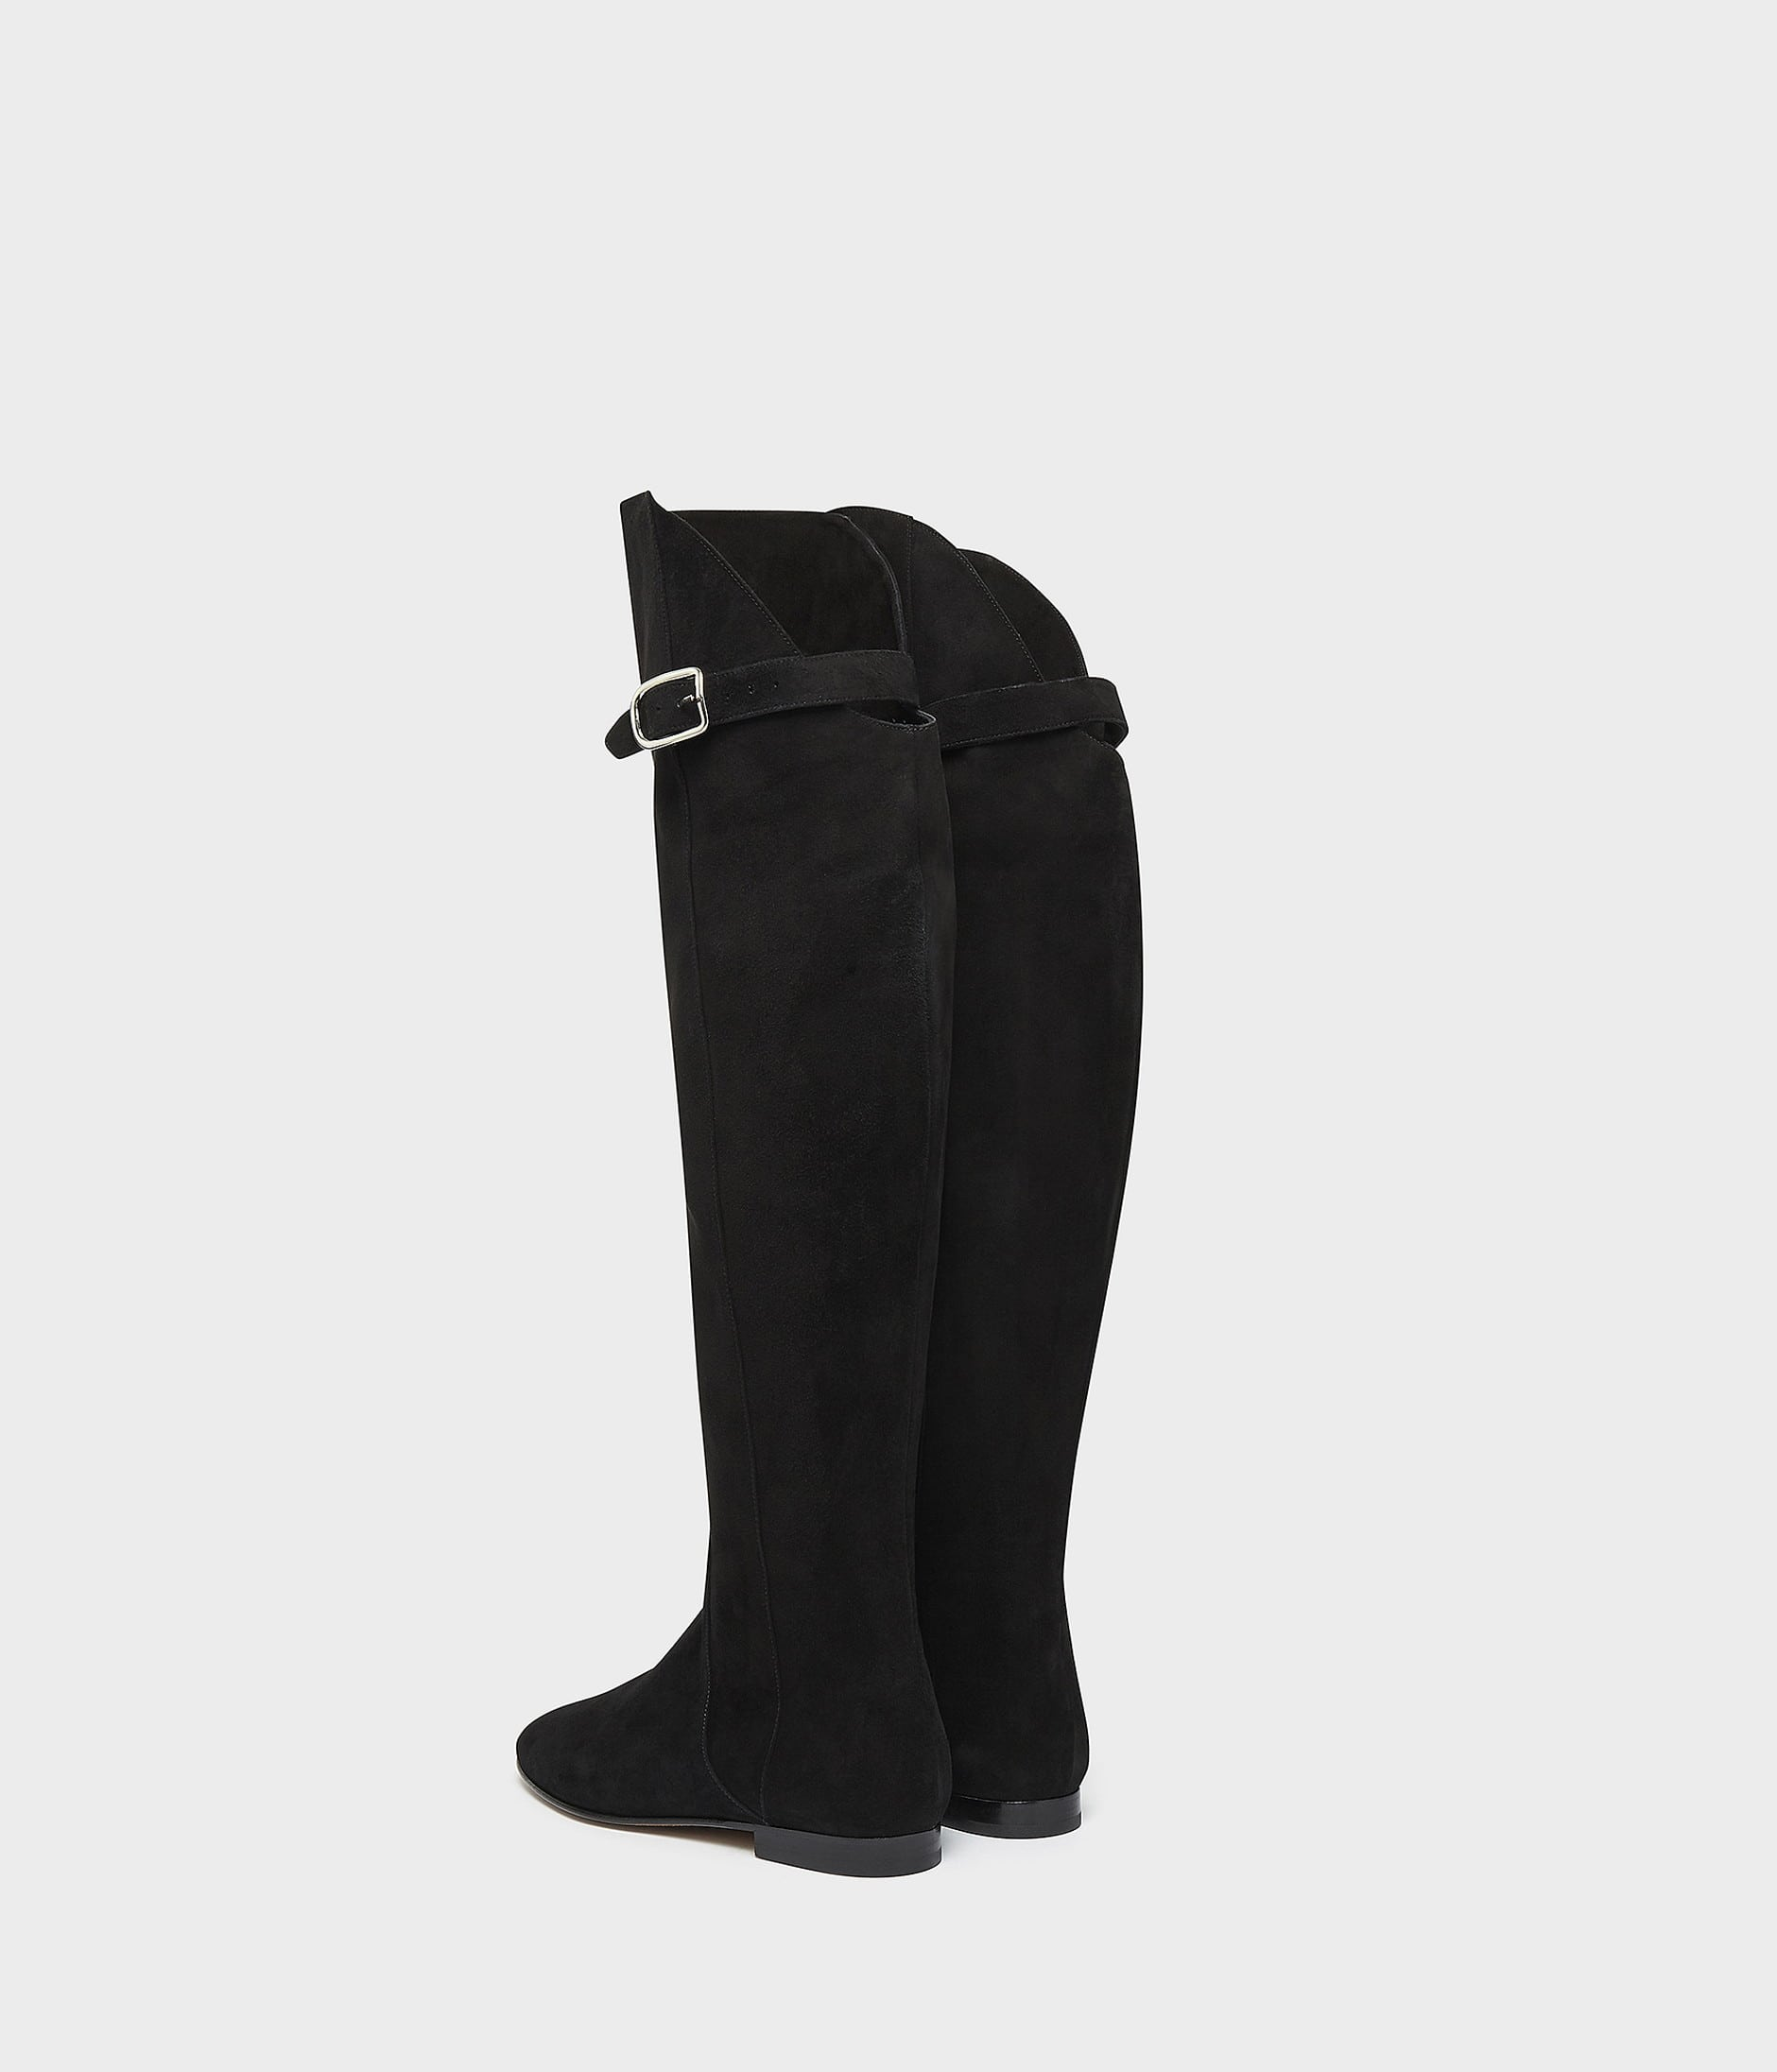 OVER THE KNEE RIDING BOOT 詳細画像 BLACK 4